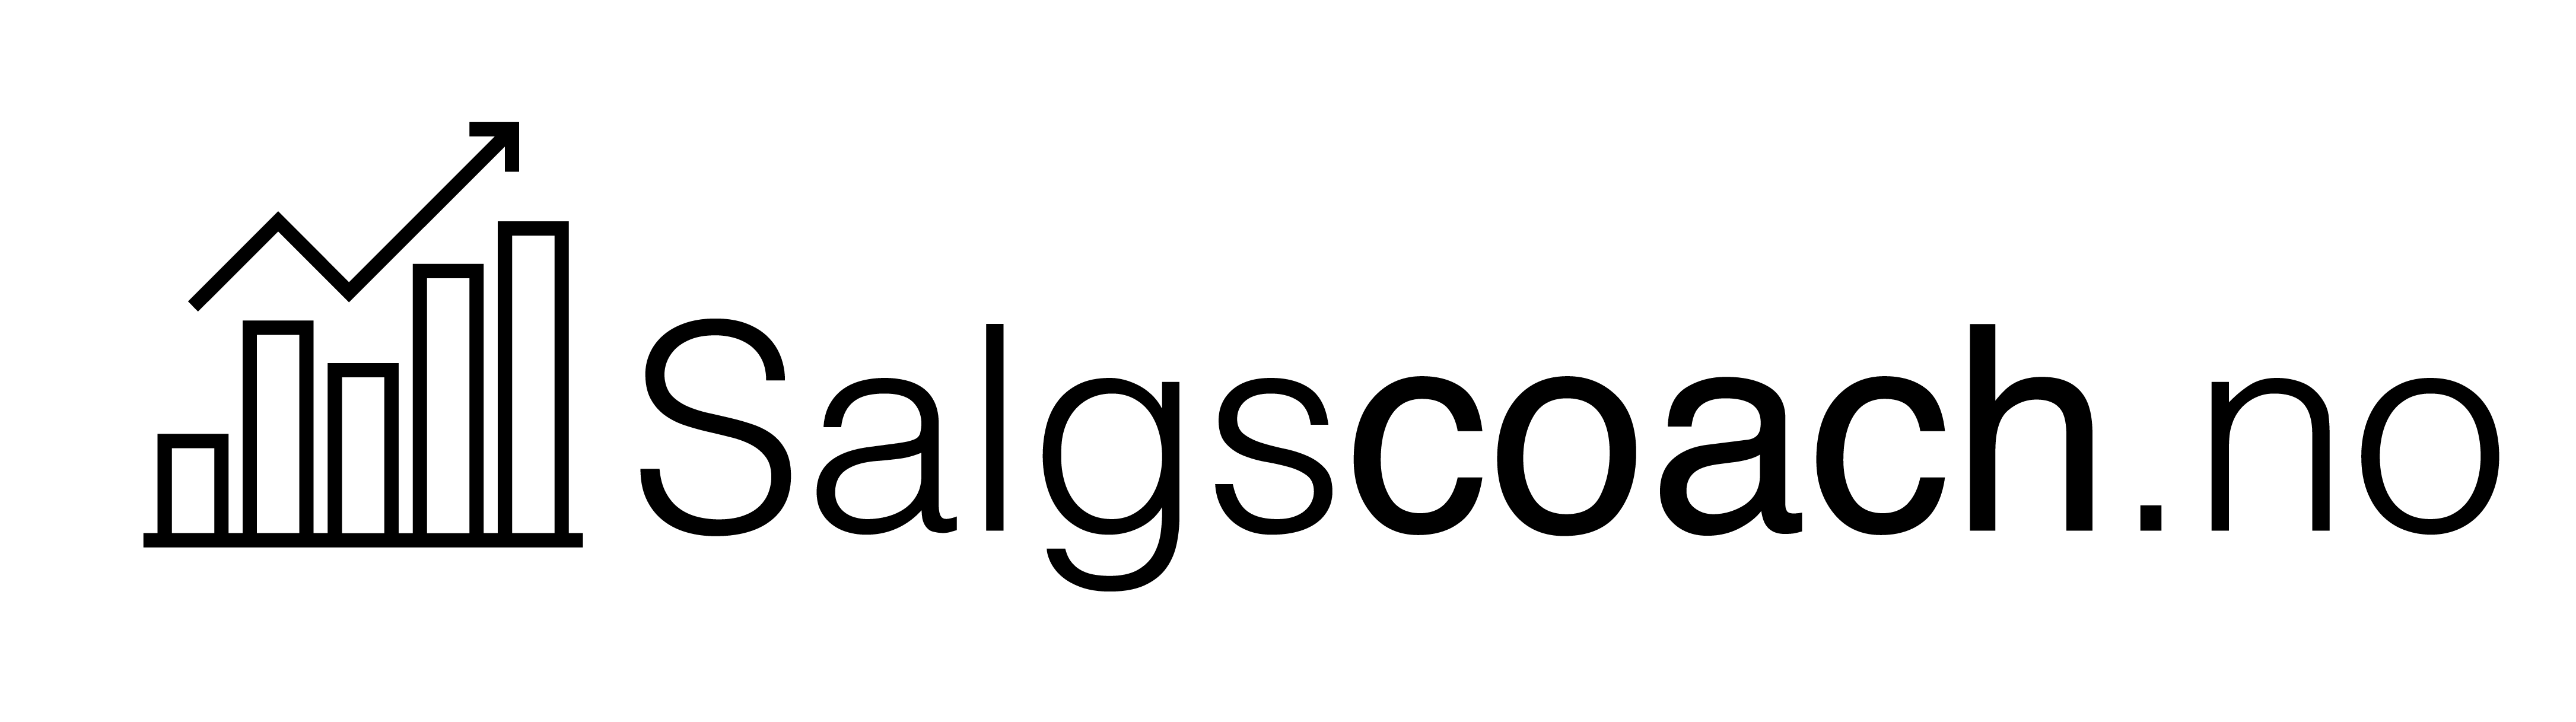 Salgscoach.no